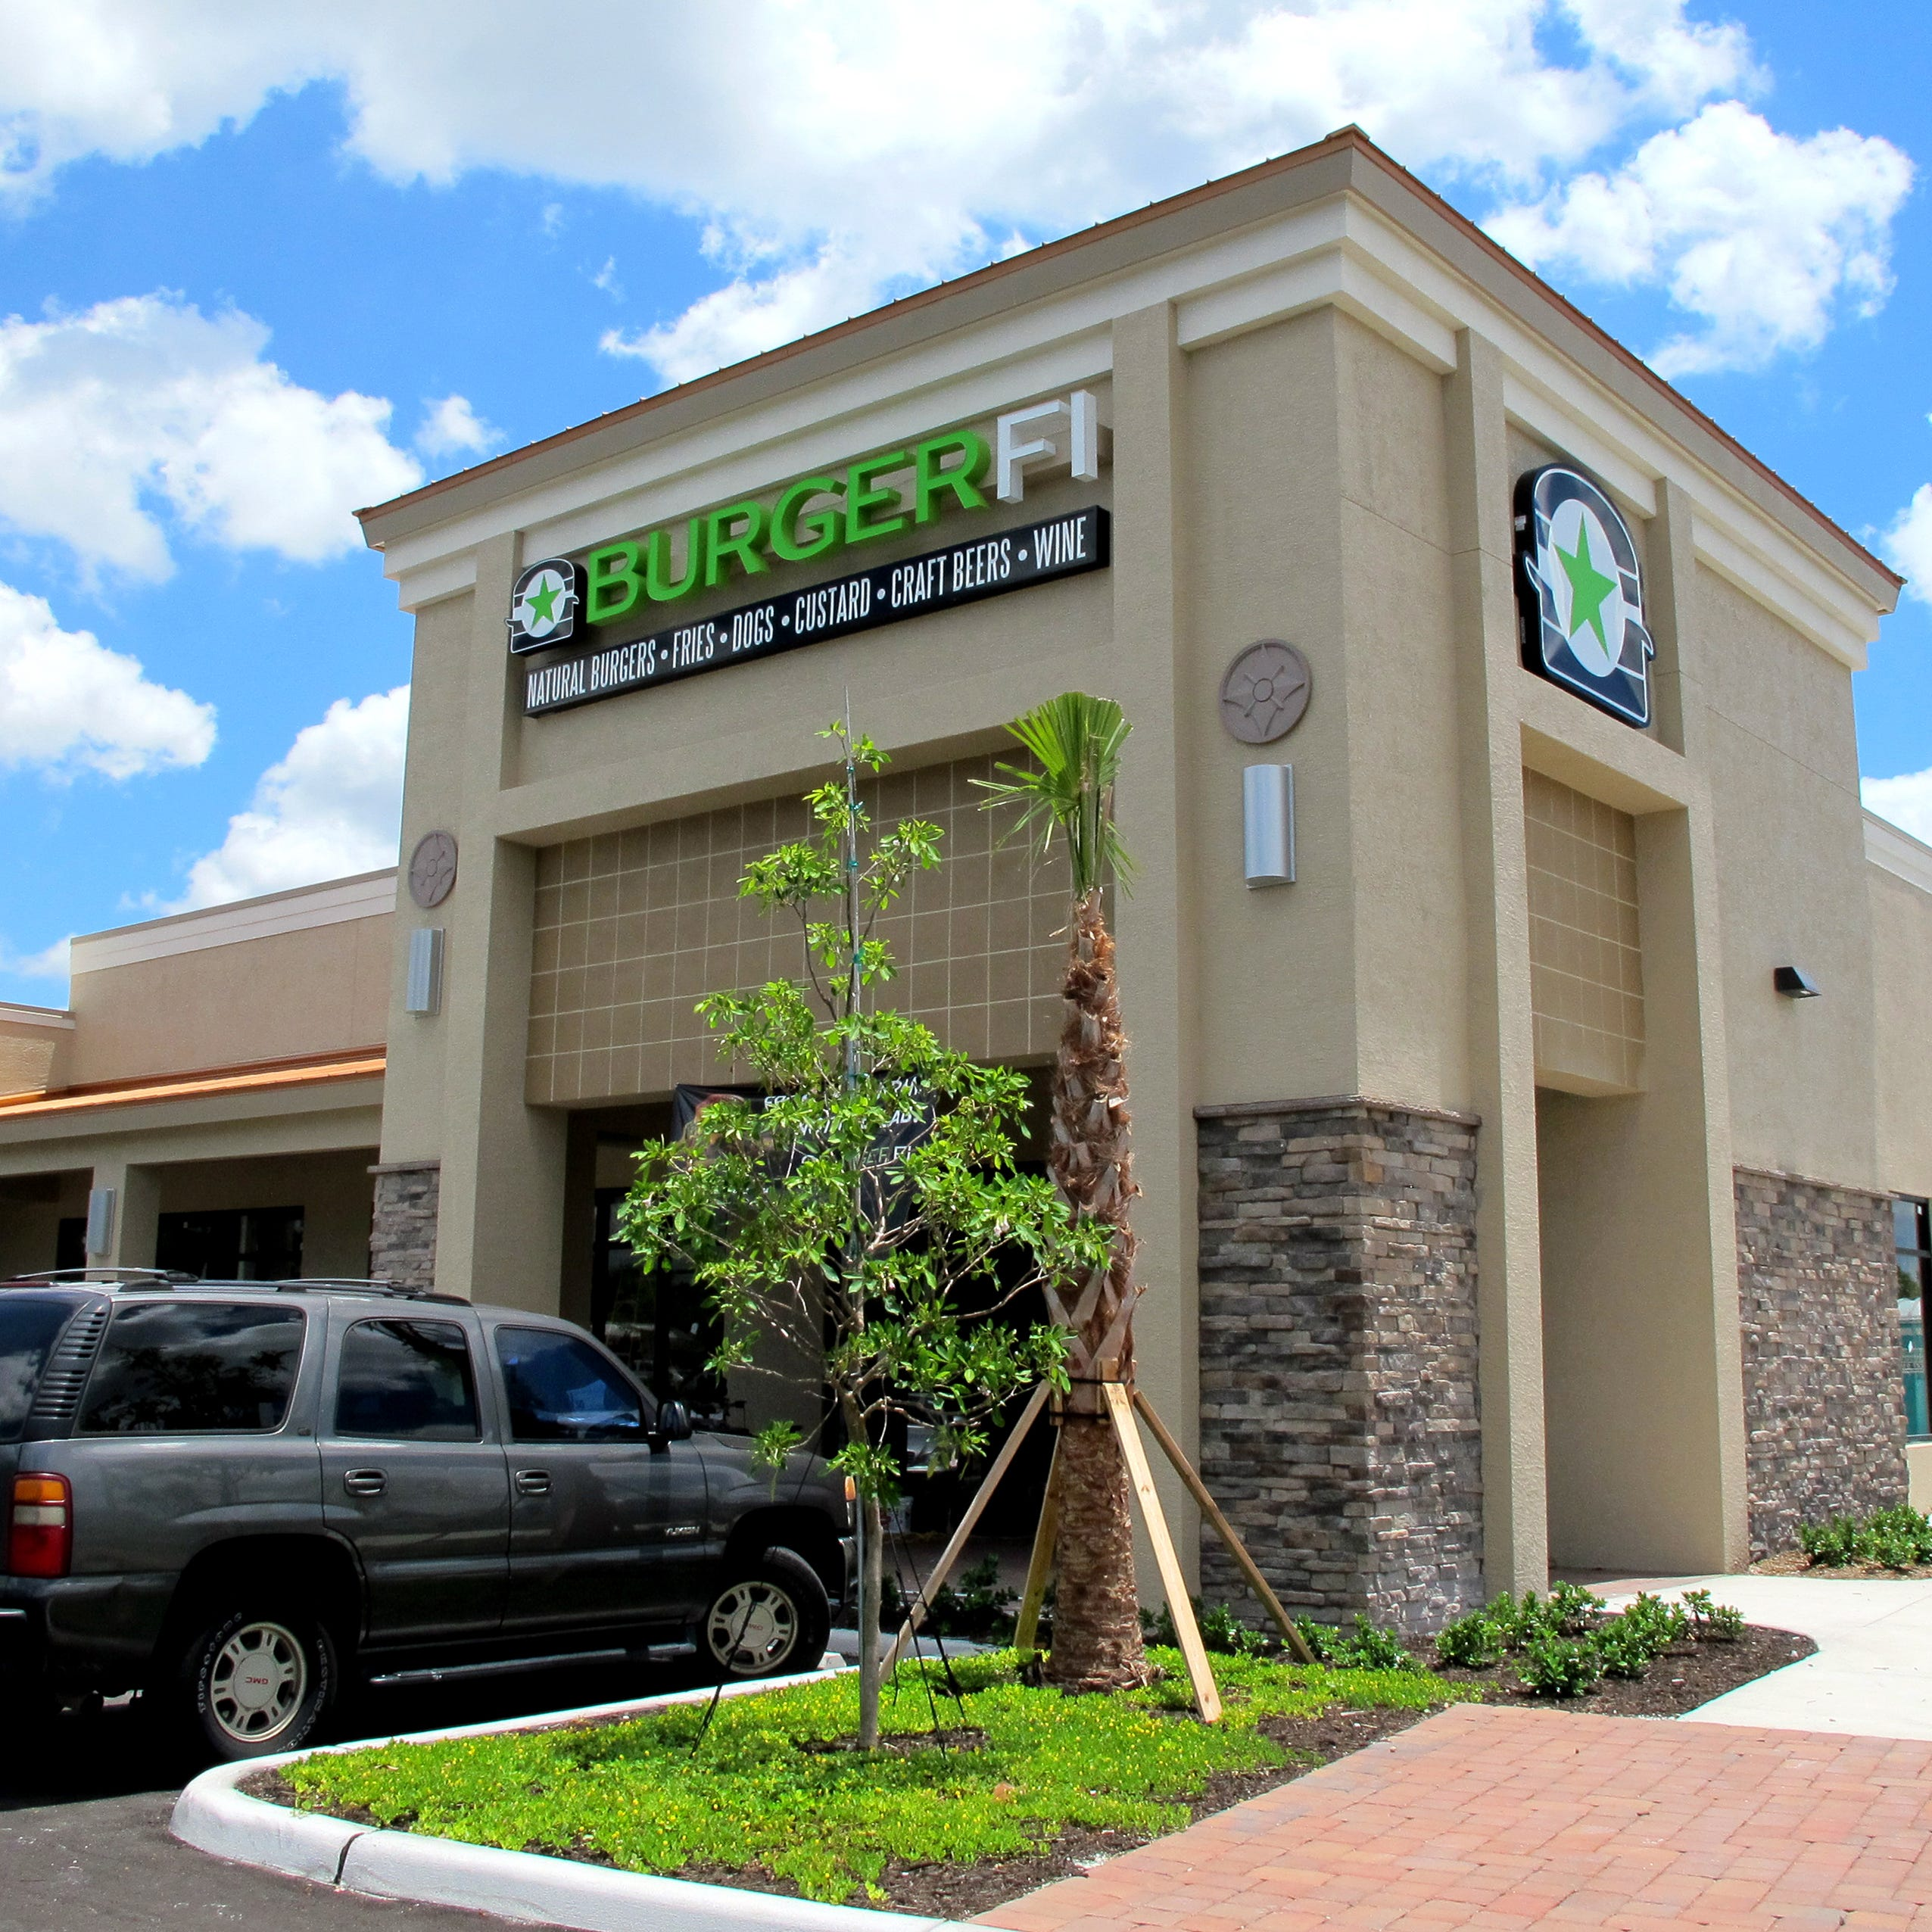 In the Know: BurgerFi restaurant reopens in North Naples